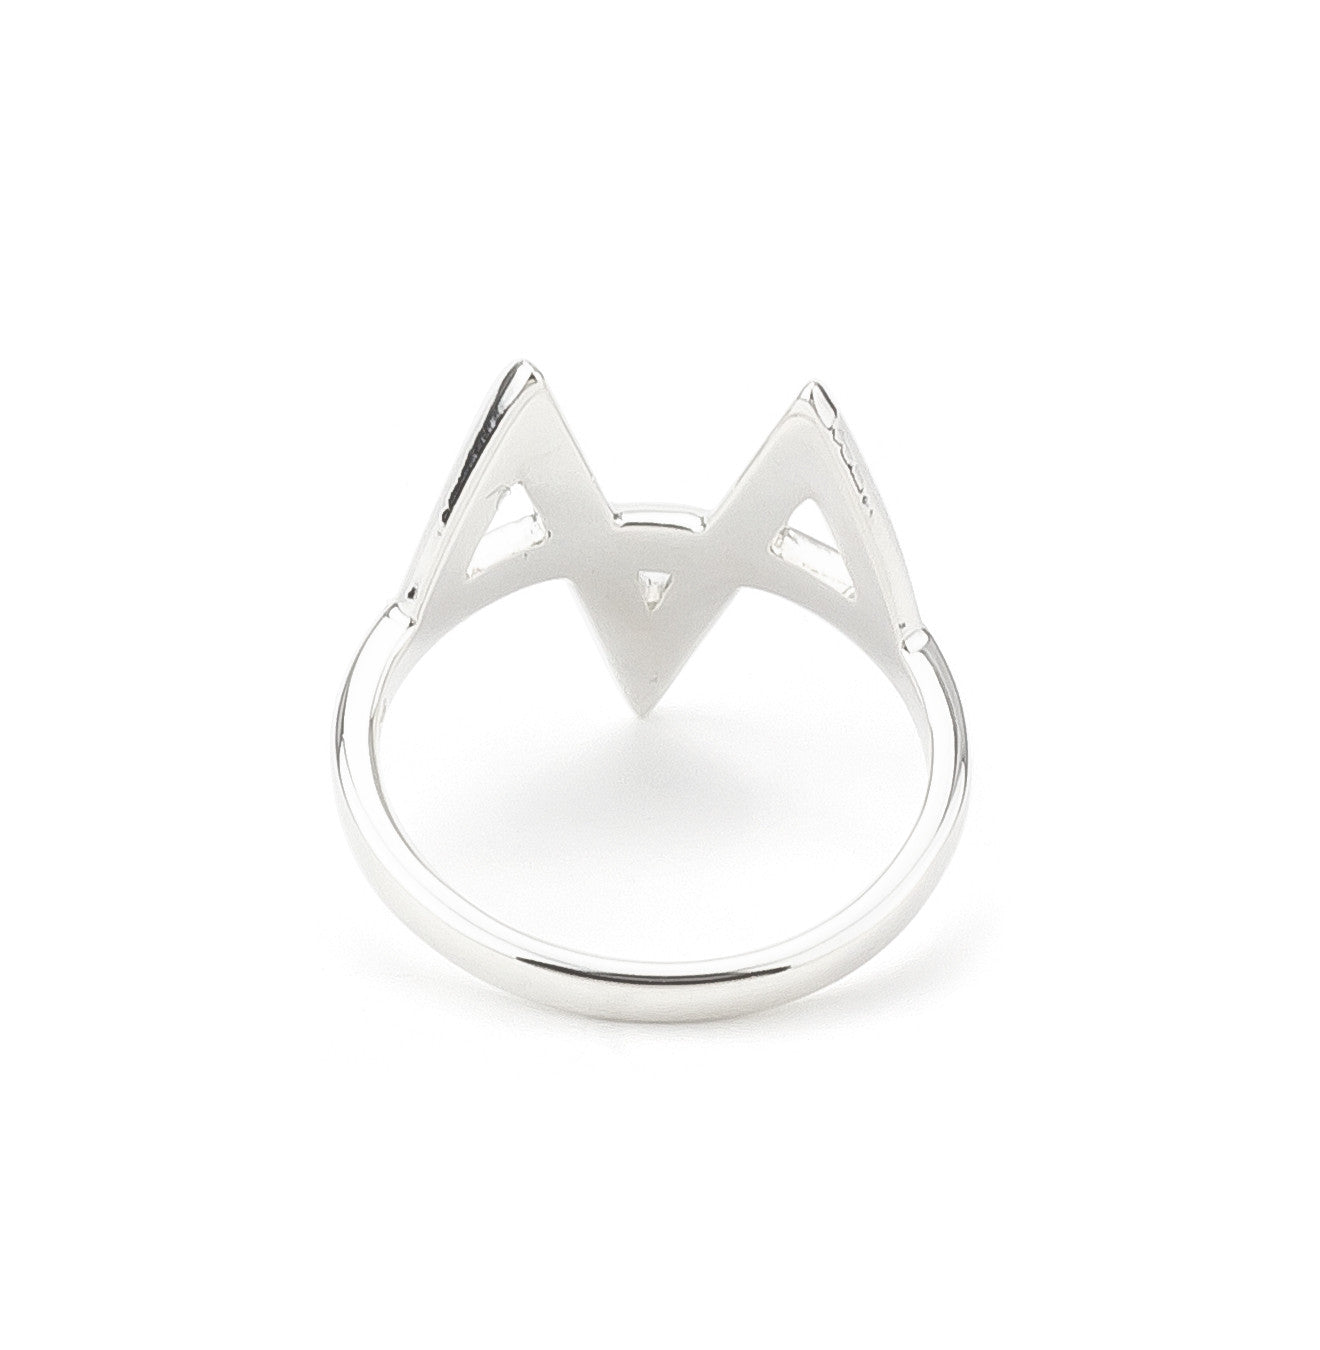 Zig Zag Geometric Statement Ring in Silver 925